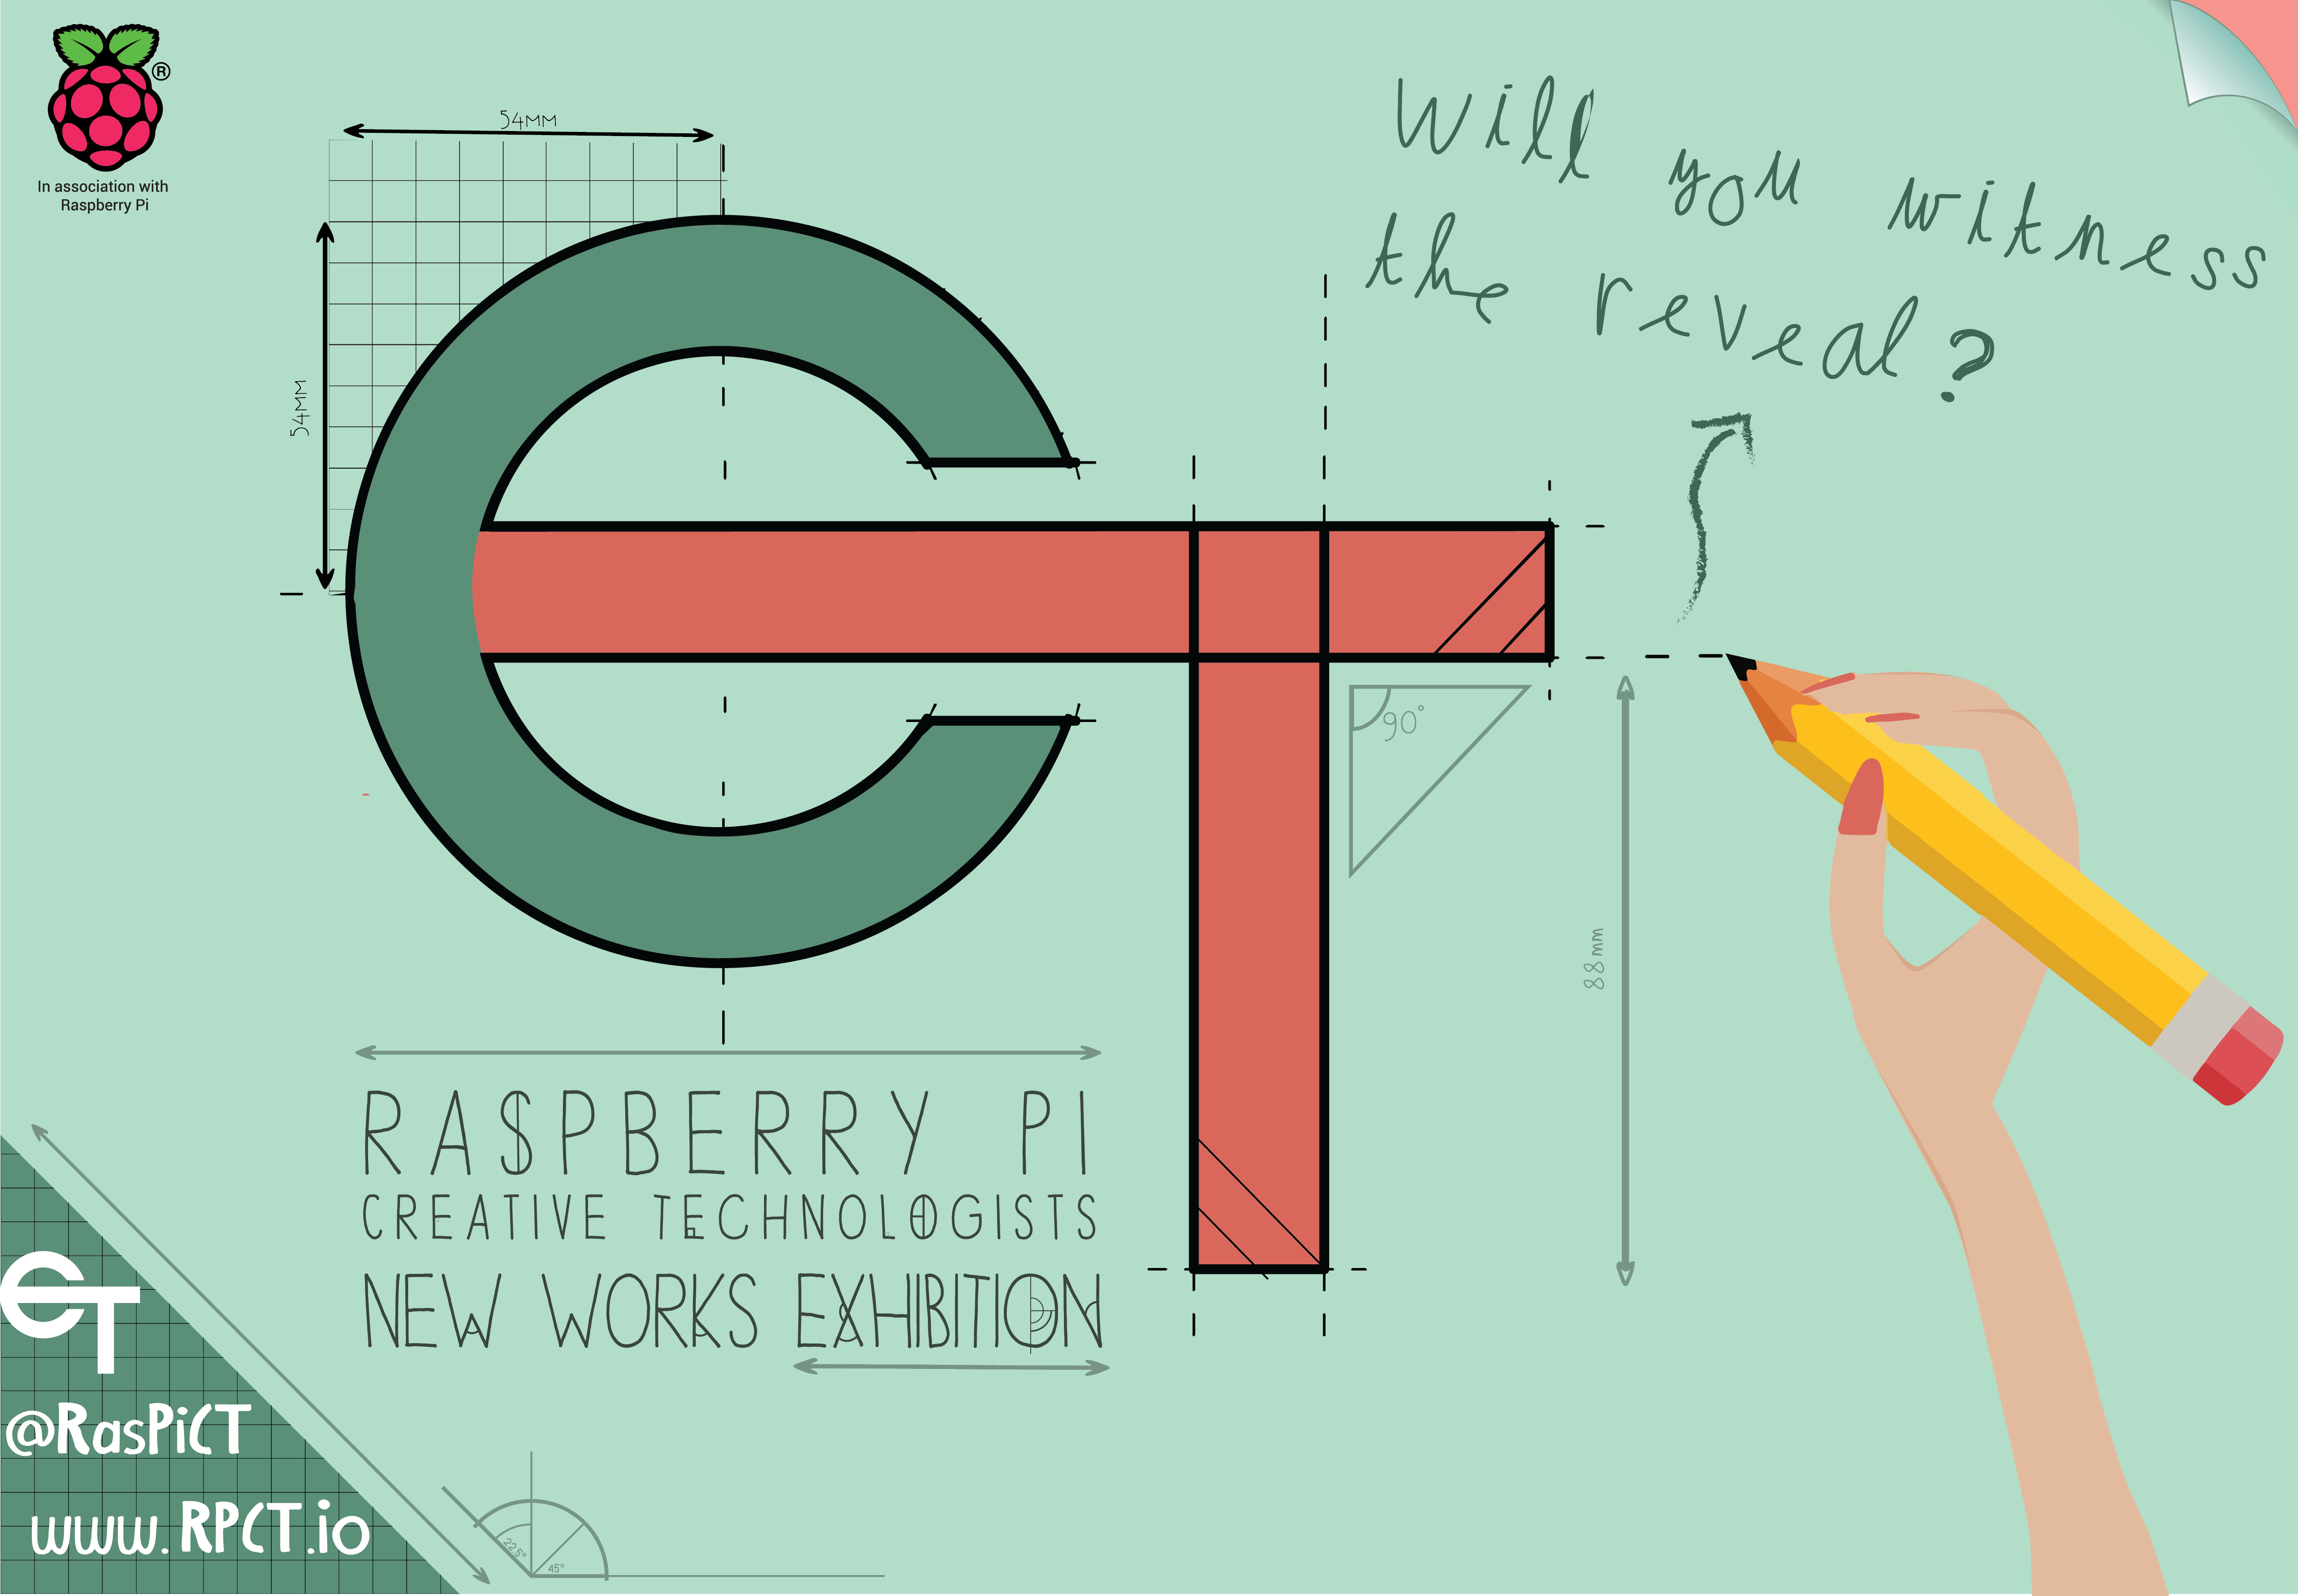 Raspberry Pi Creative Technologists New Works Exhbition poster